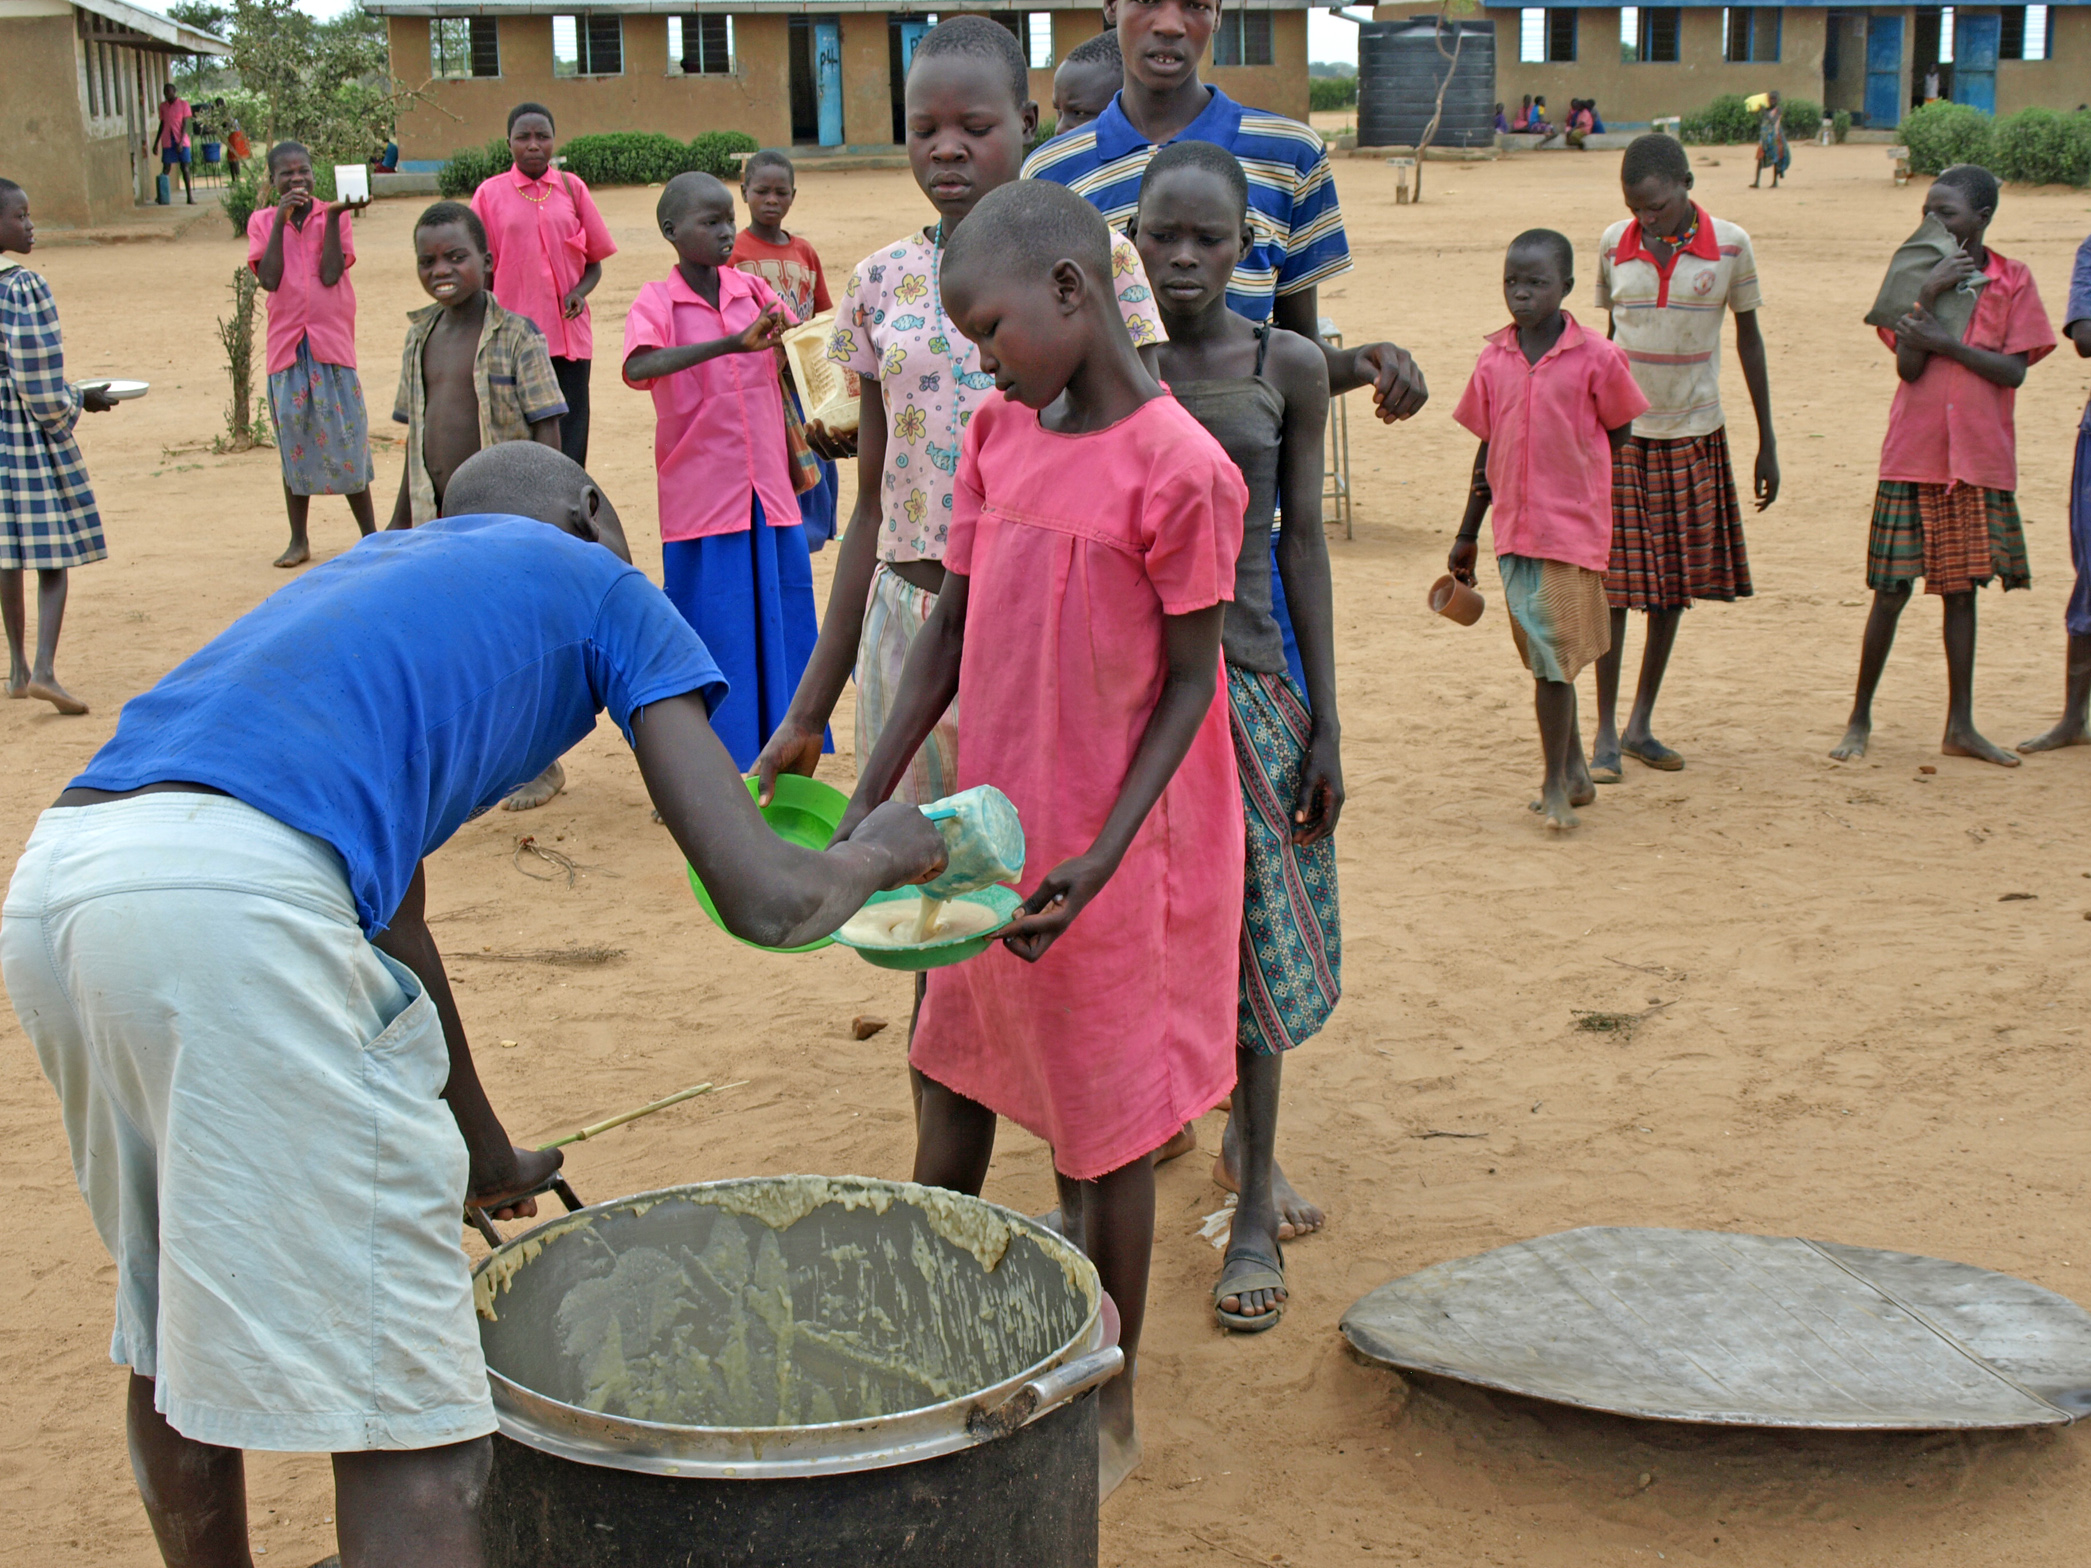 Mealtime at Lopuyo Primary School in Kotido District, in Uganda's eastern Karamoja region. Rations have recently been reduced due to a funding gap at WFP. Combined with the increased demand for labour during the current harvest period, this has reduced